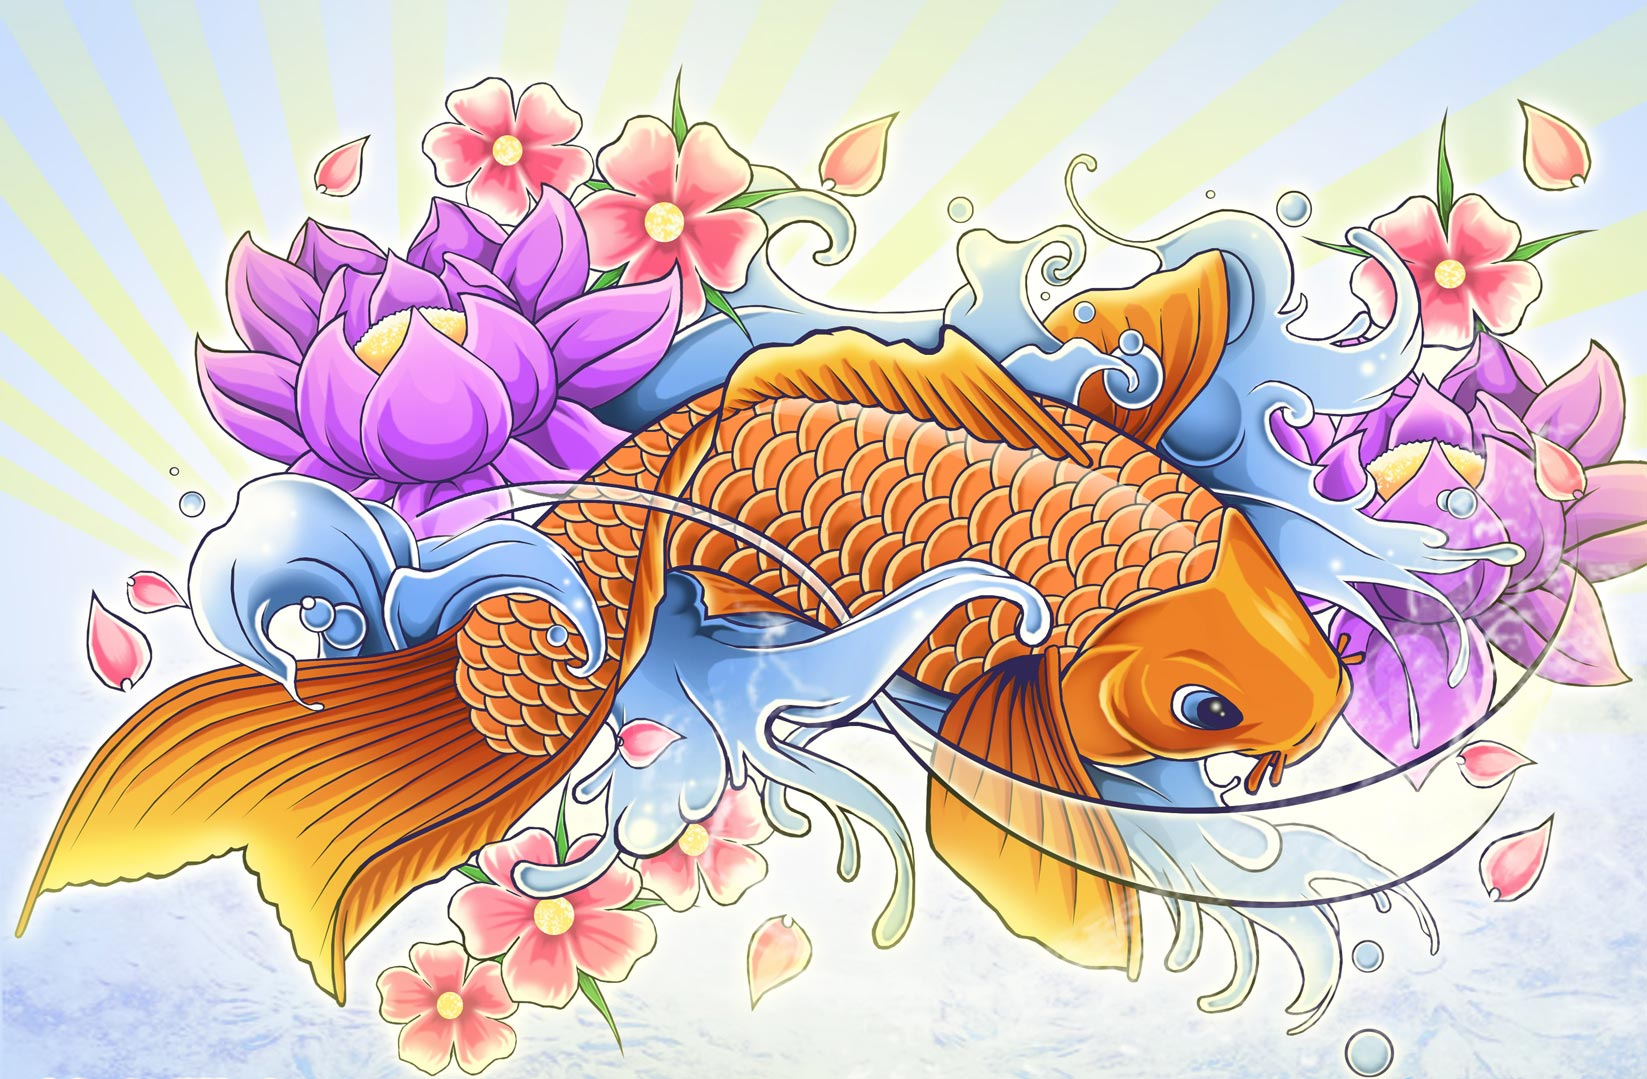 Collection nature 39 s show fish by techgnotic on deviantart for Koi fish pond drawing